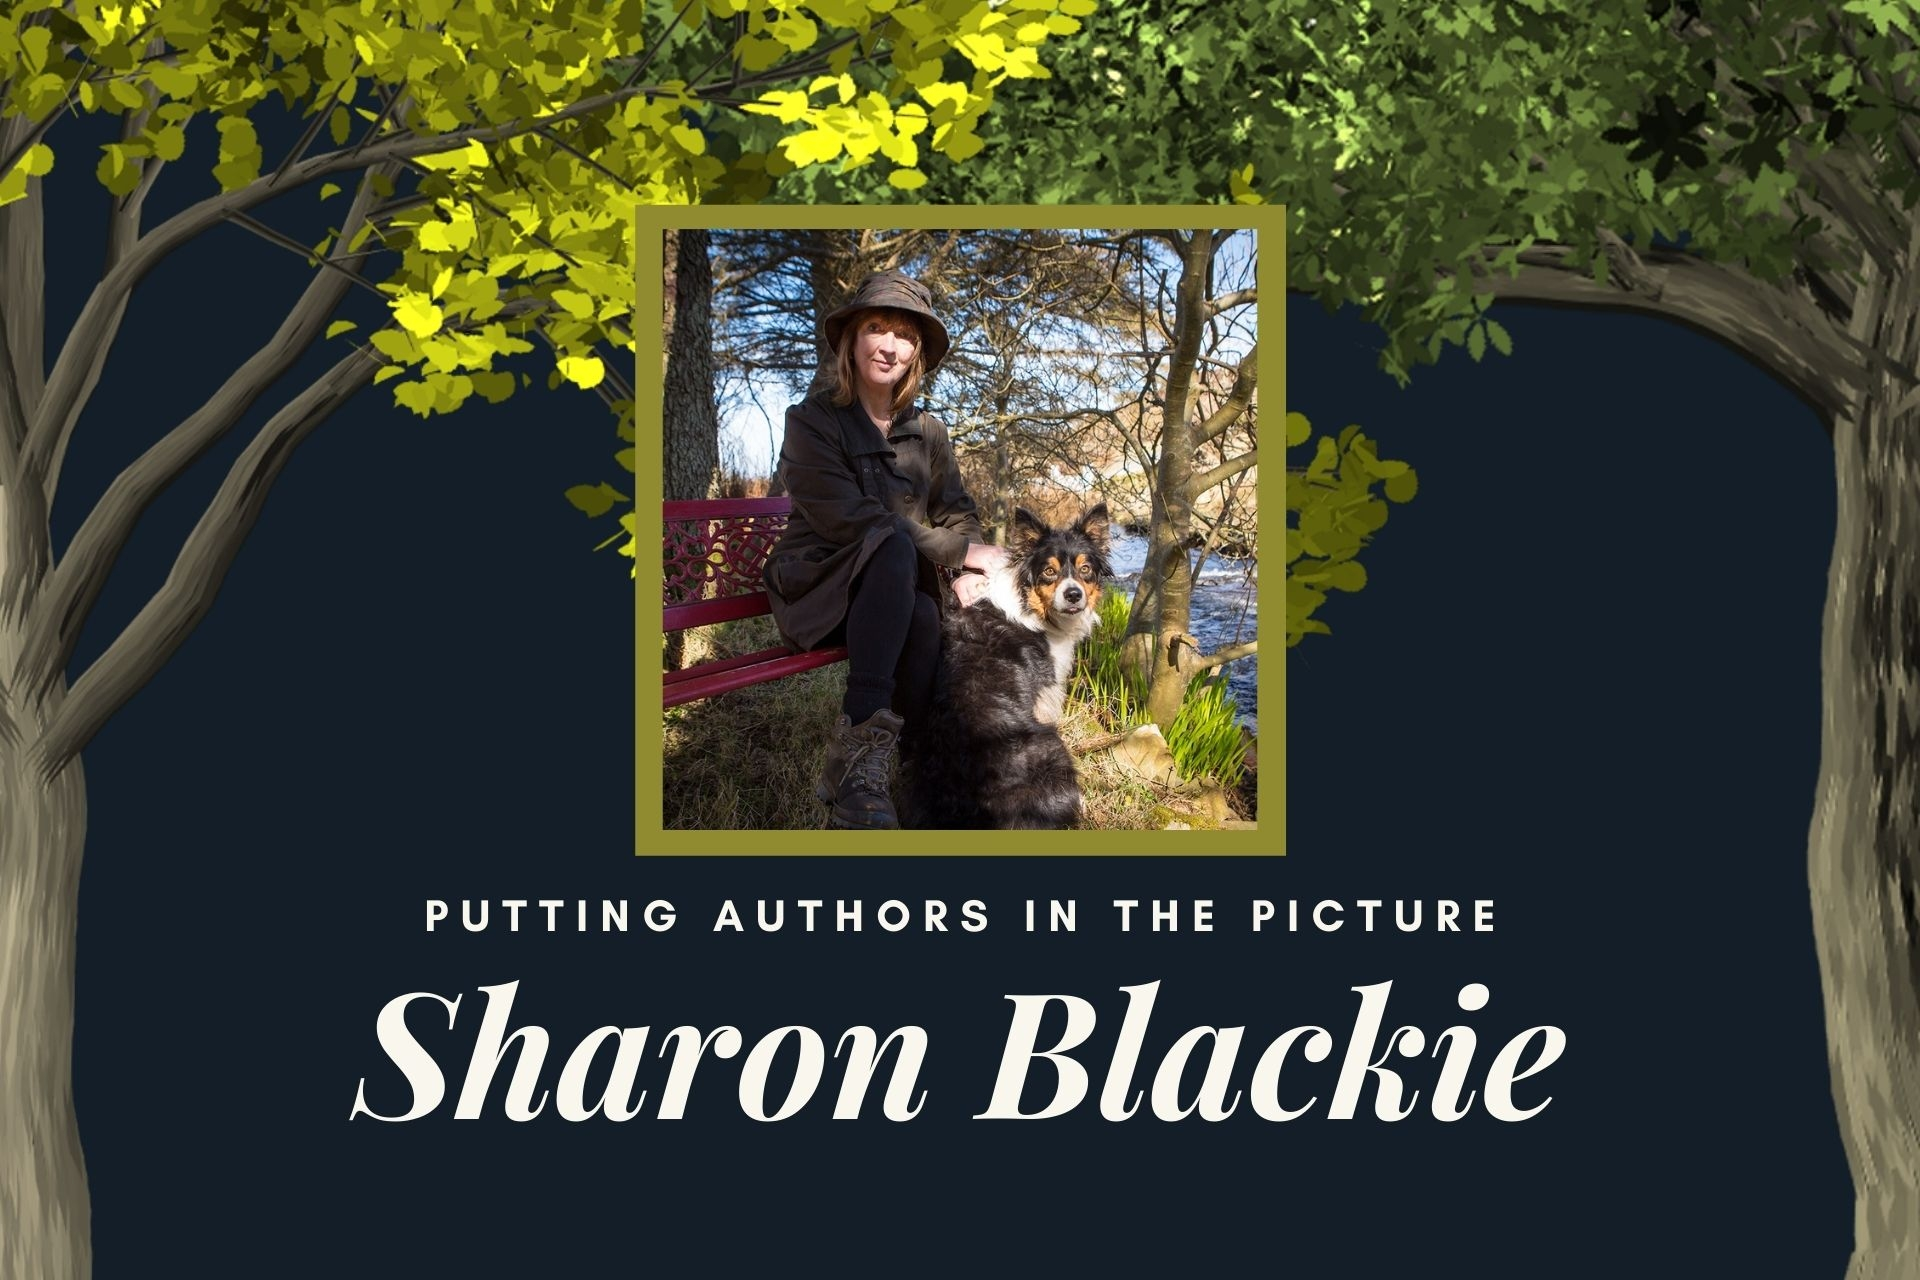 Putting Authors in the Picture #32: Sharon Blackie